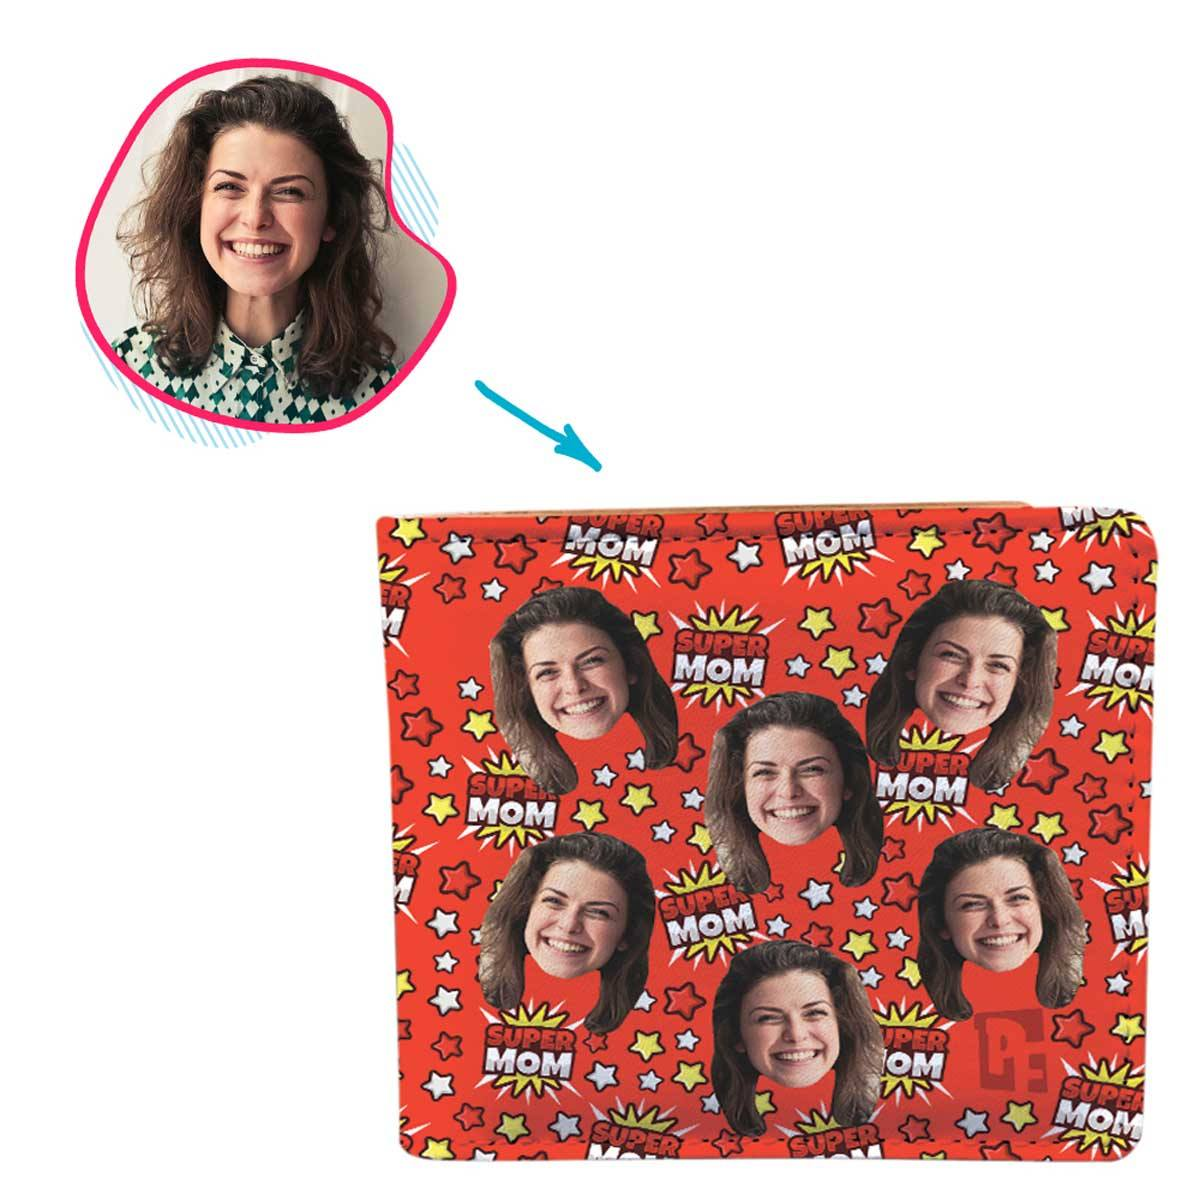 red Super Mom wallet personalized with photo of face printed on it